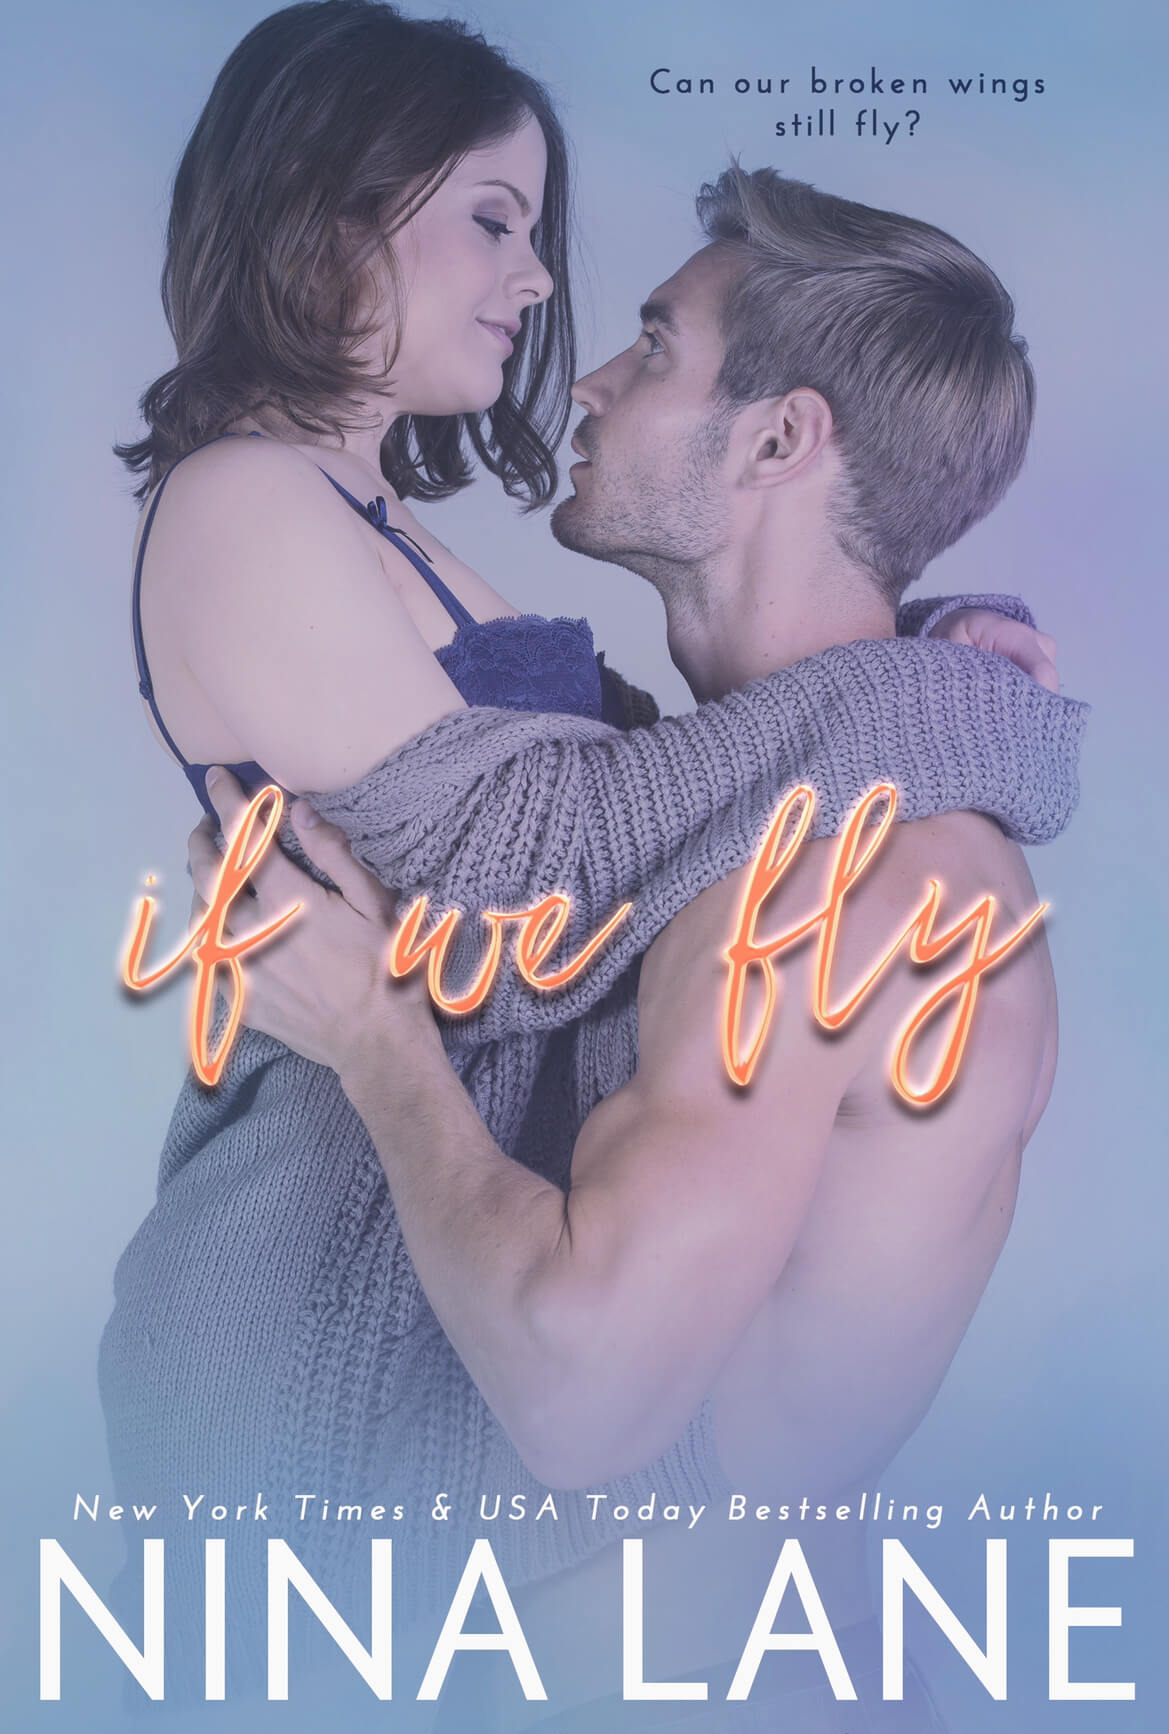 Release Blitz * Excerpt * If We Fly (What If duet book 2) by Nina Lane * Blog Tour * Book Review *